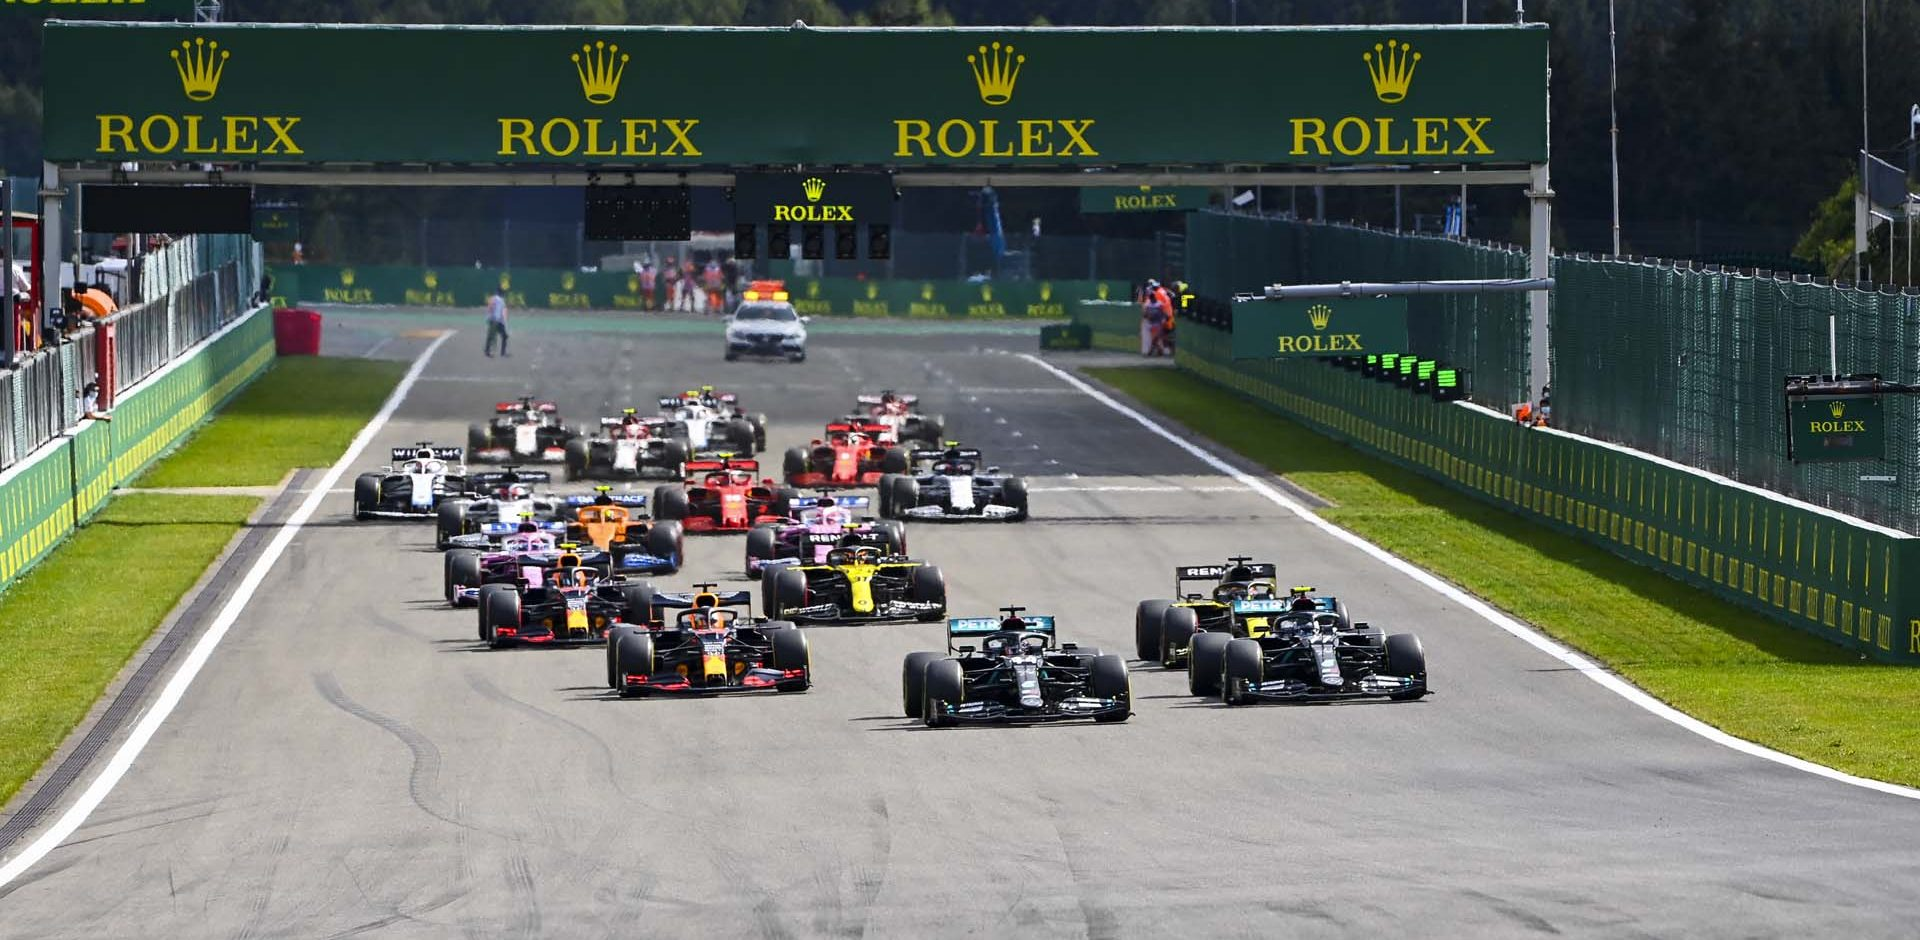 2020 Belgian Grand Prix, Sunday - LAT Images start